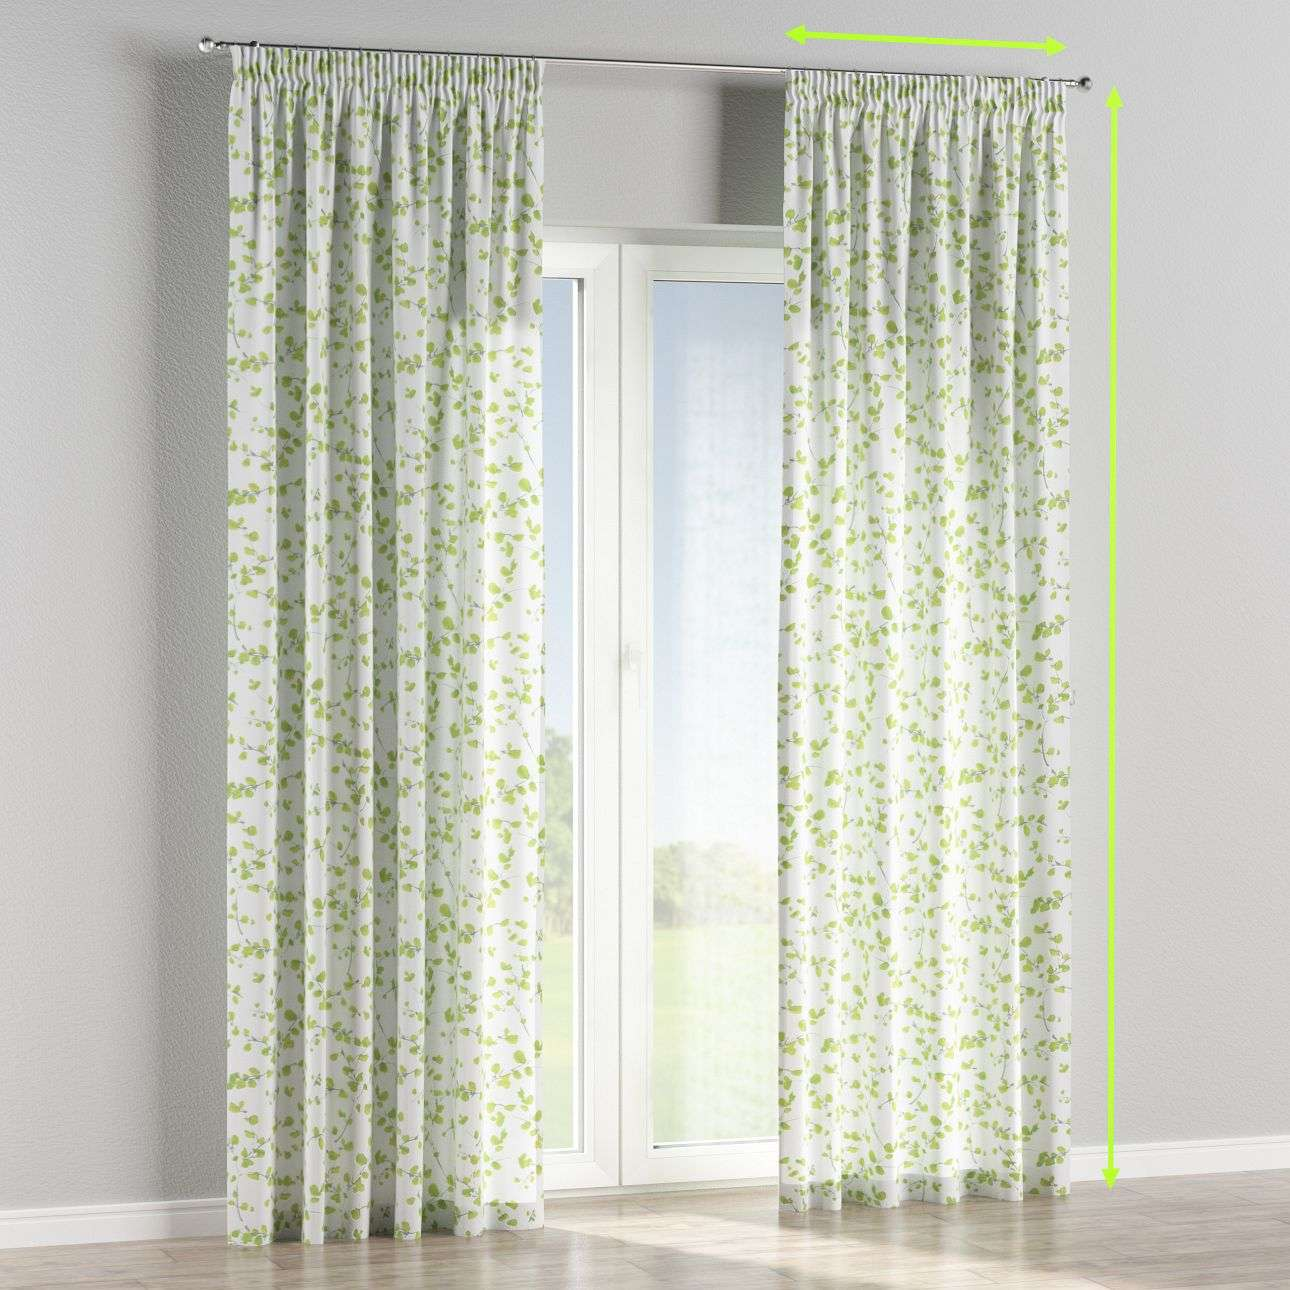 Pencil pleat lined curtains in collection Aquarelle, fabric: 140-76